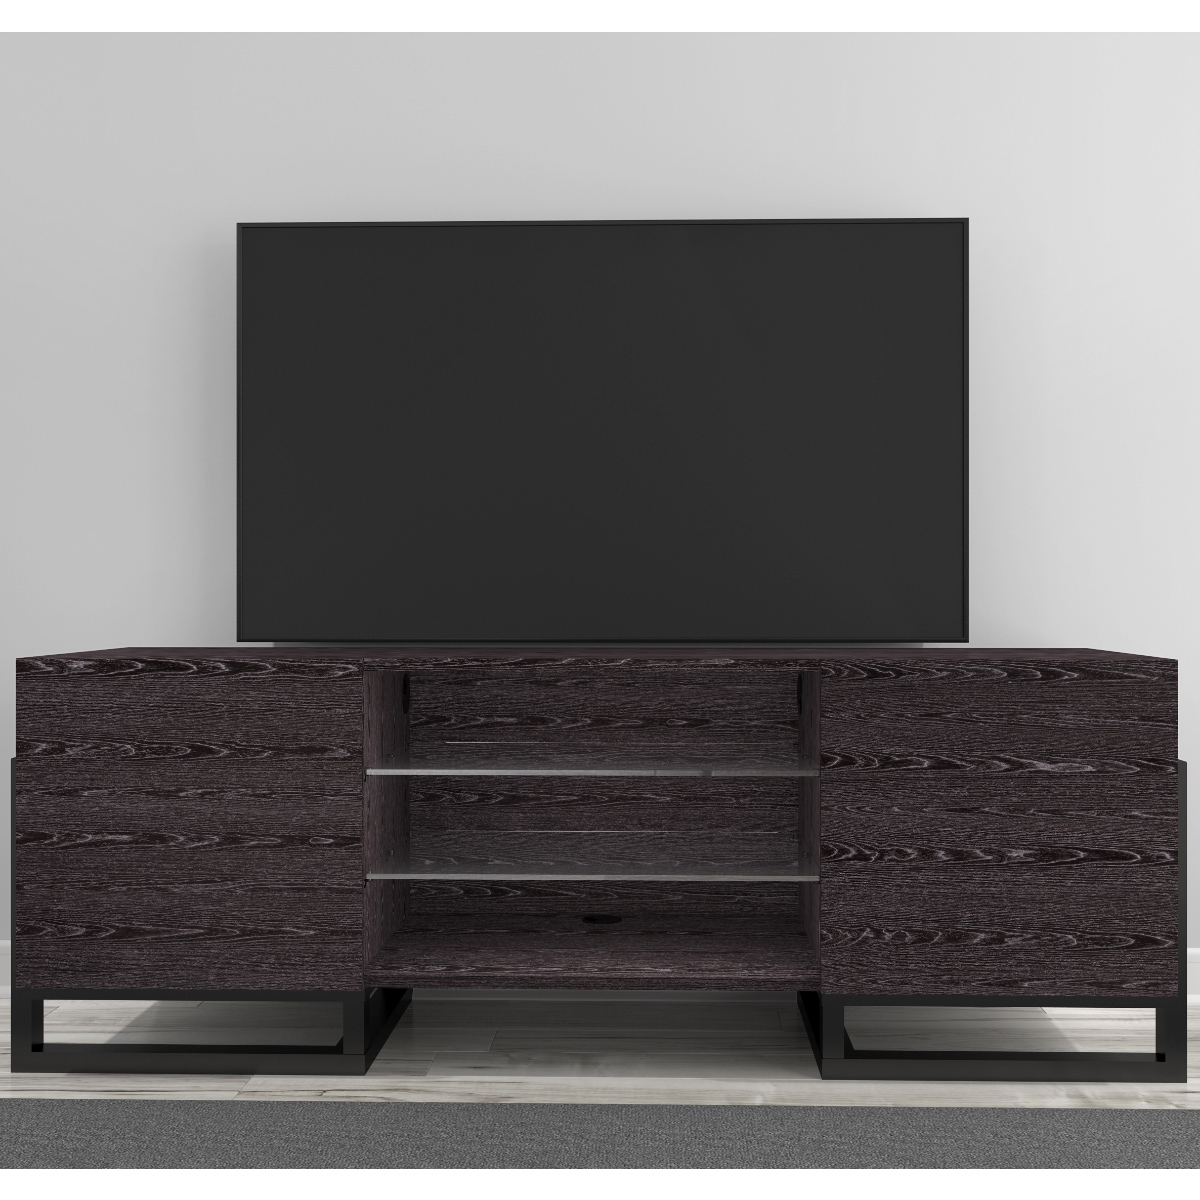 Awesome Selection Of Tv Stands (View 9 of 20)